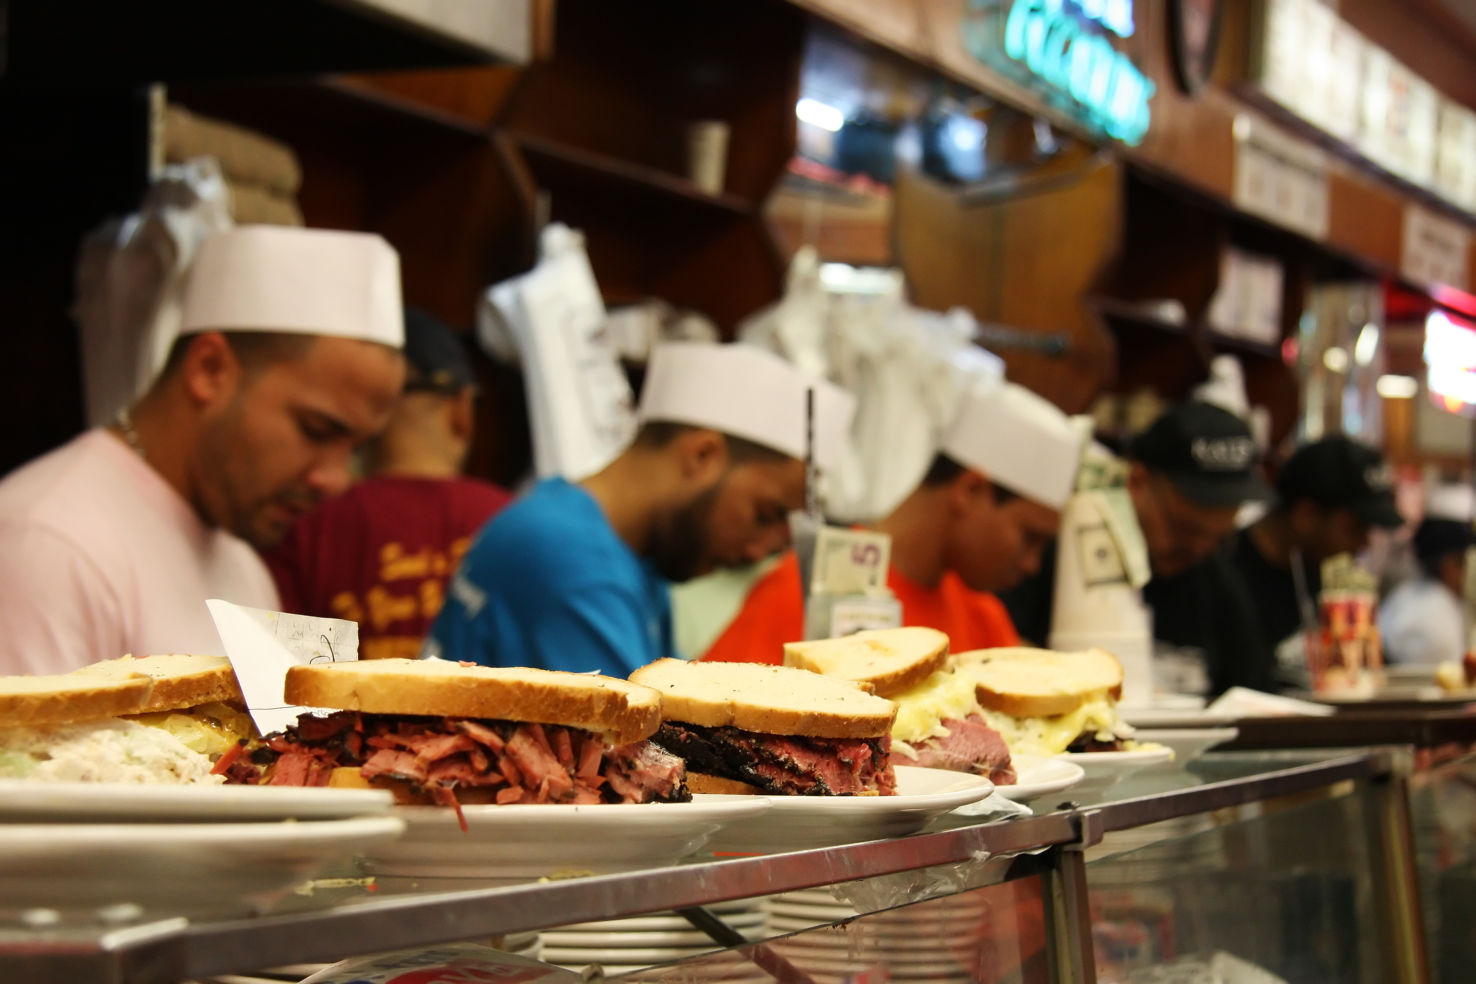 Pastrami sandwiches, Katz's Deli, New York City, Manhattan